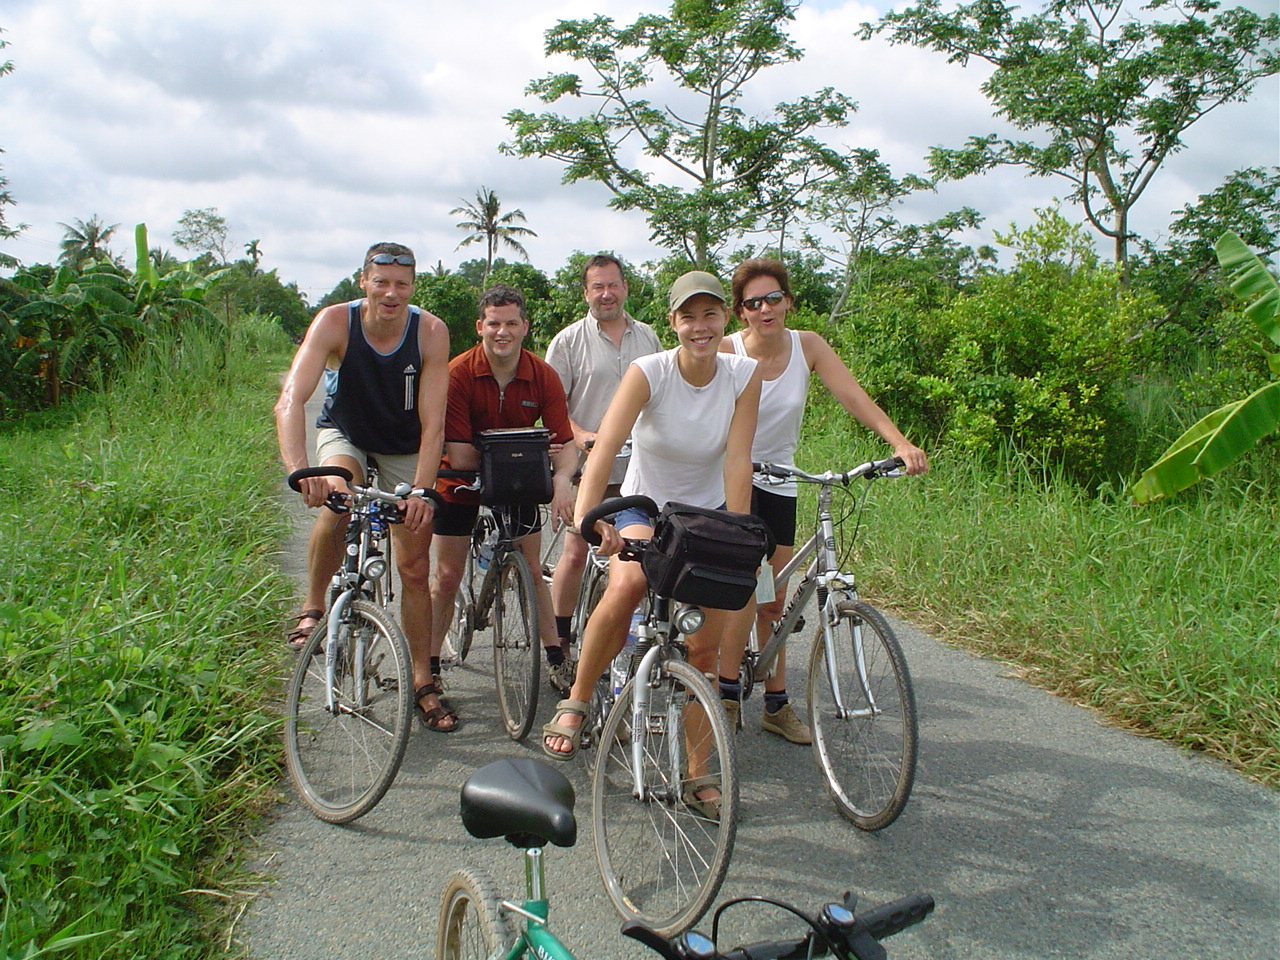 Cycling day trip in the Mekong Delta